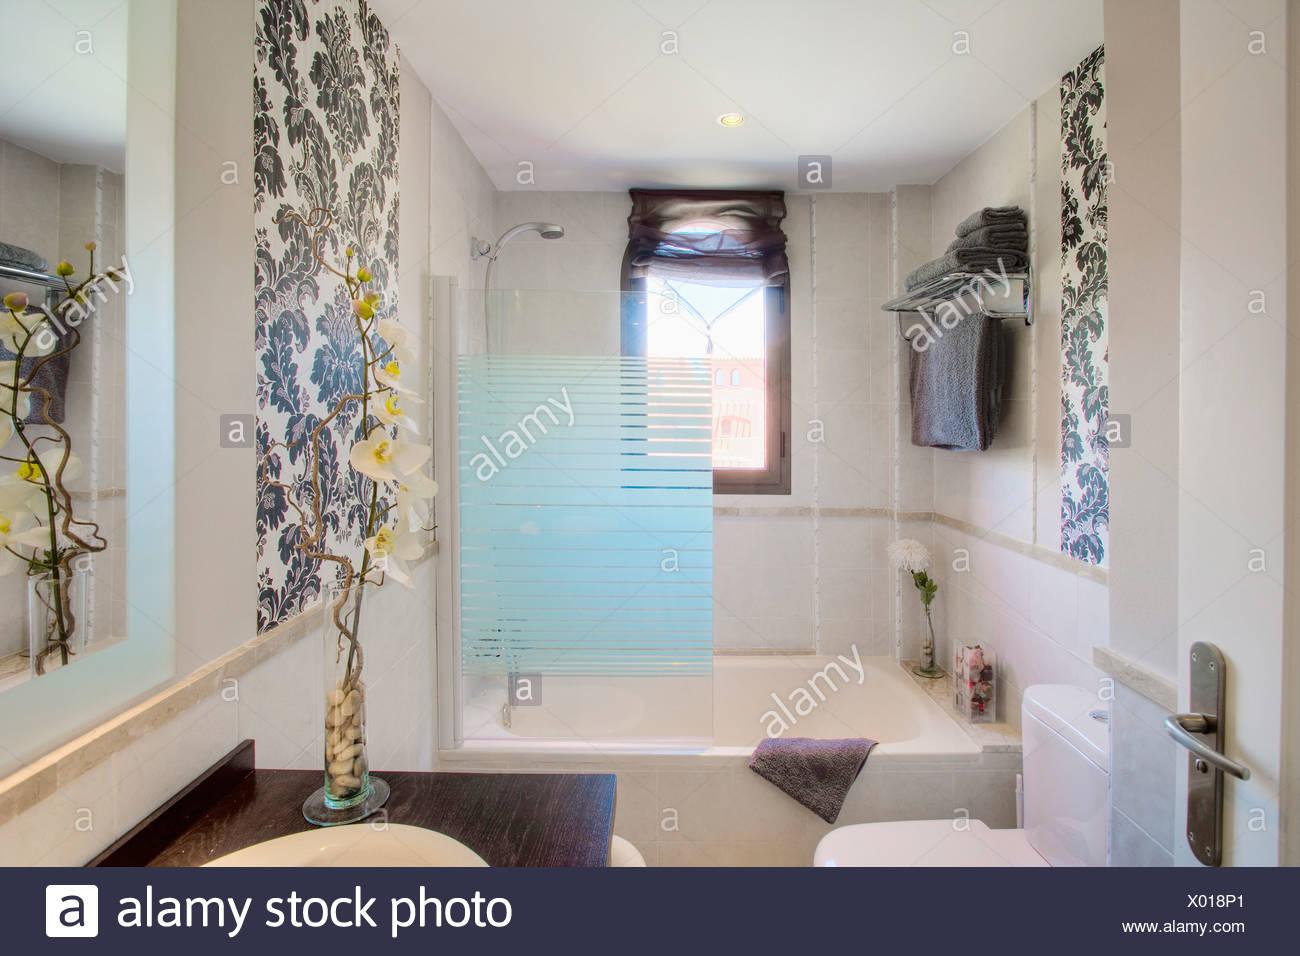 . Small modern bathroom with opaque glass shower screen on bath and